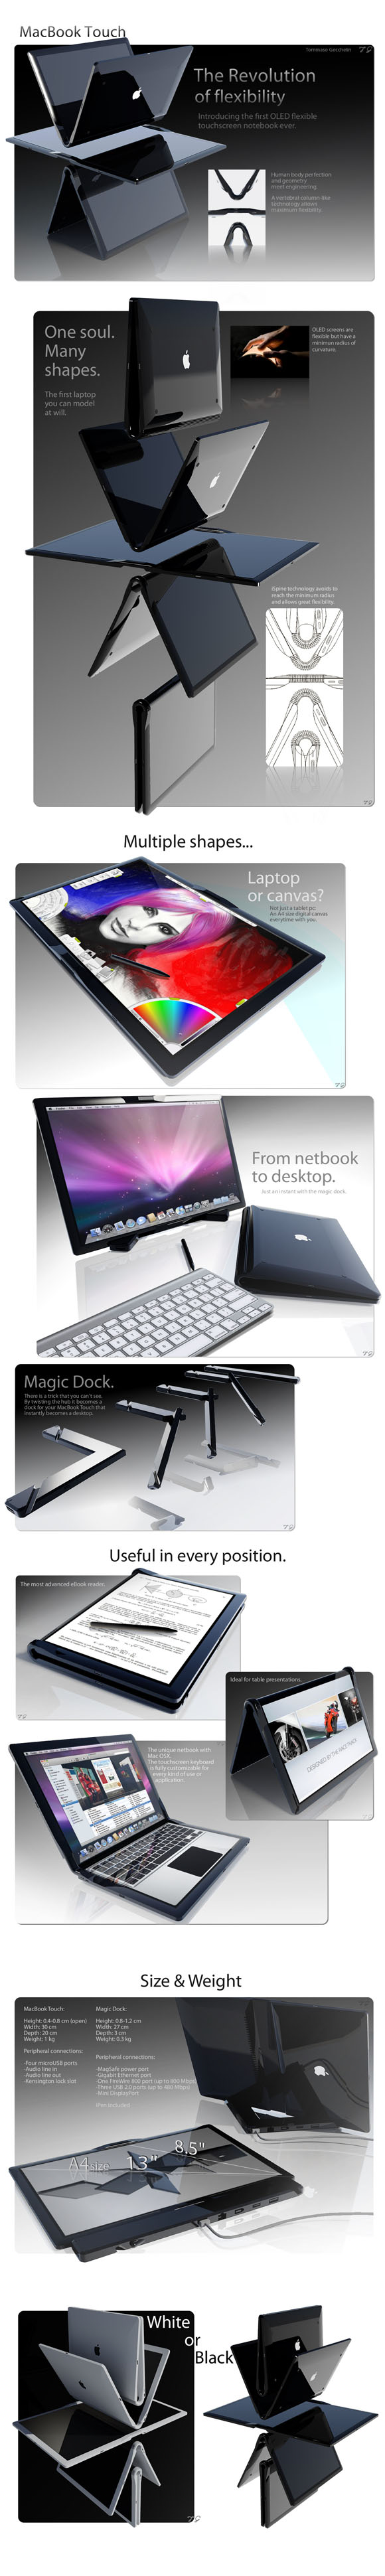 新一代Macbook·划时代的产品 - Ha`HeNgrY`Ppy - HeNgrYs Blog